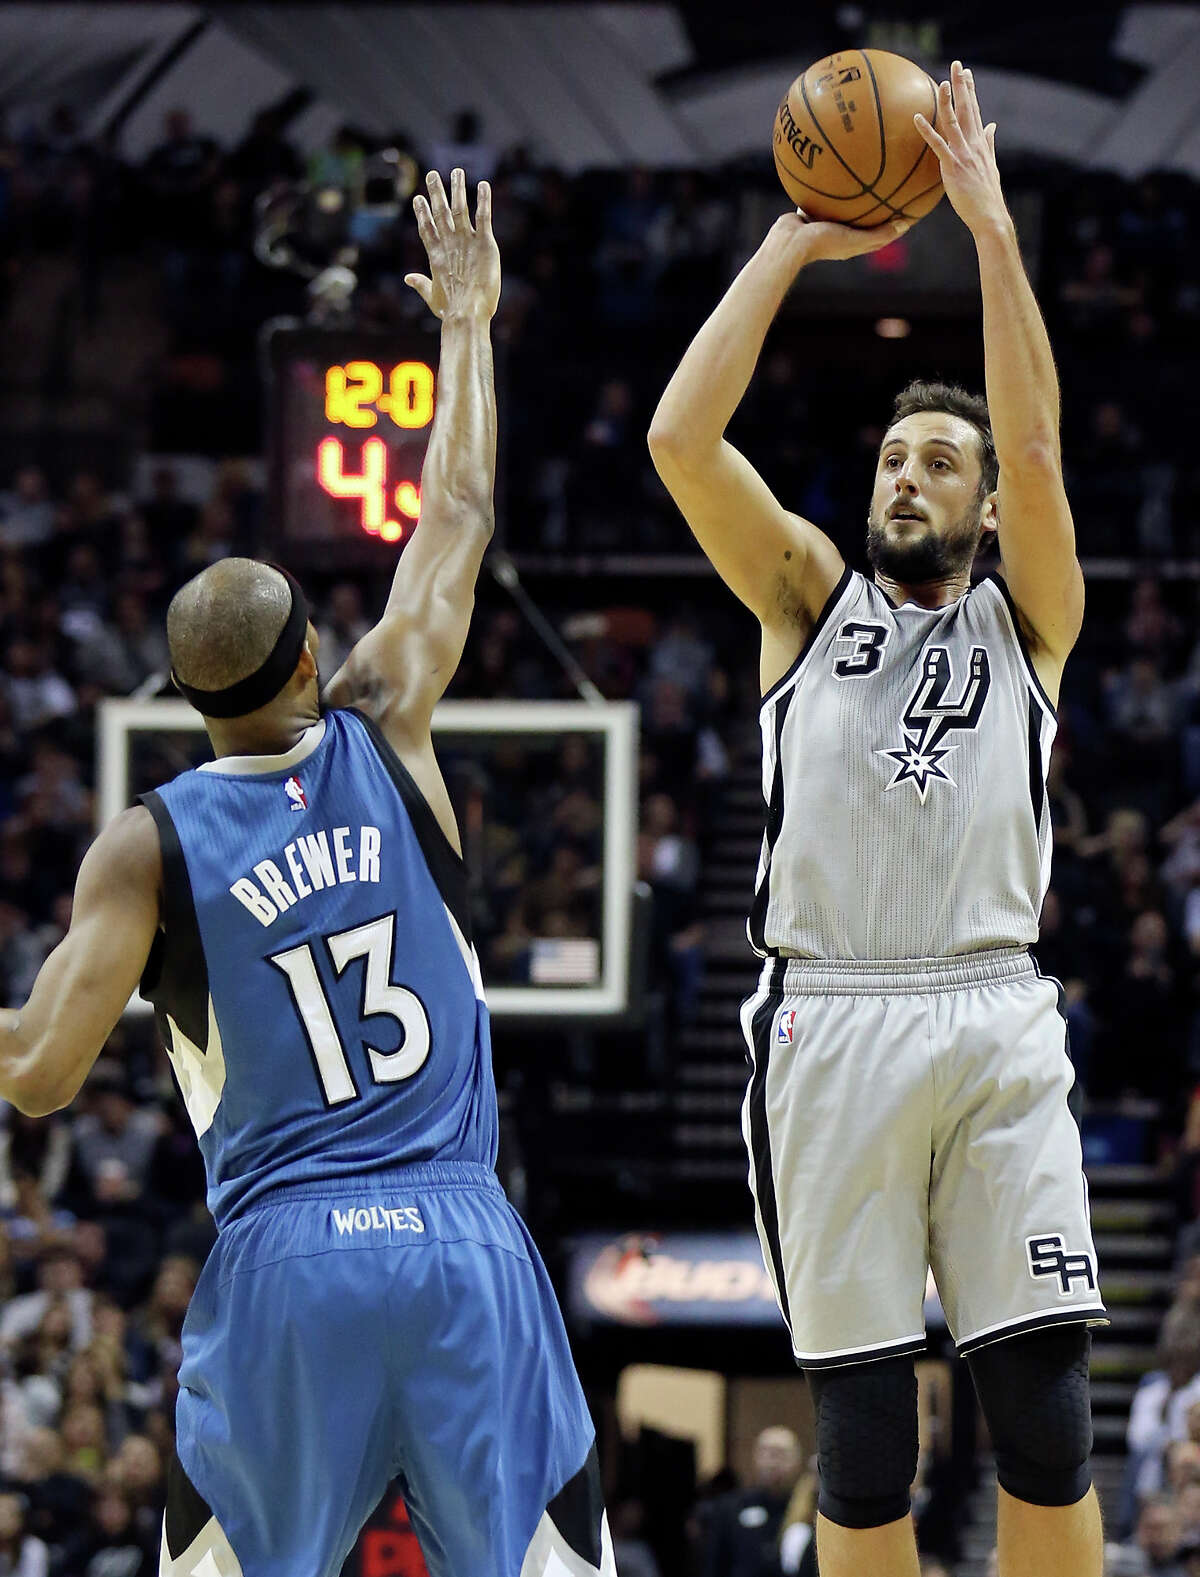 Combined years of experience on Spurs 15-man roster: 101 years, an average of 6.73 years/player Marco Belinelli has been a pro for 7 years.